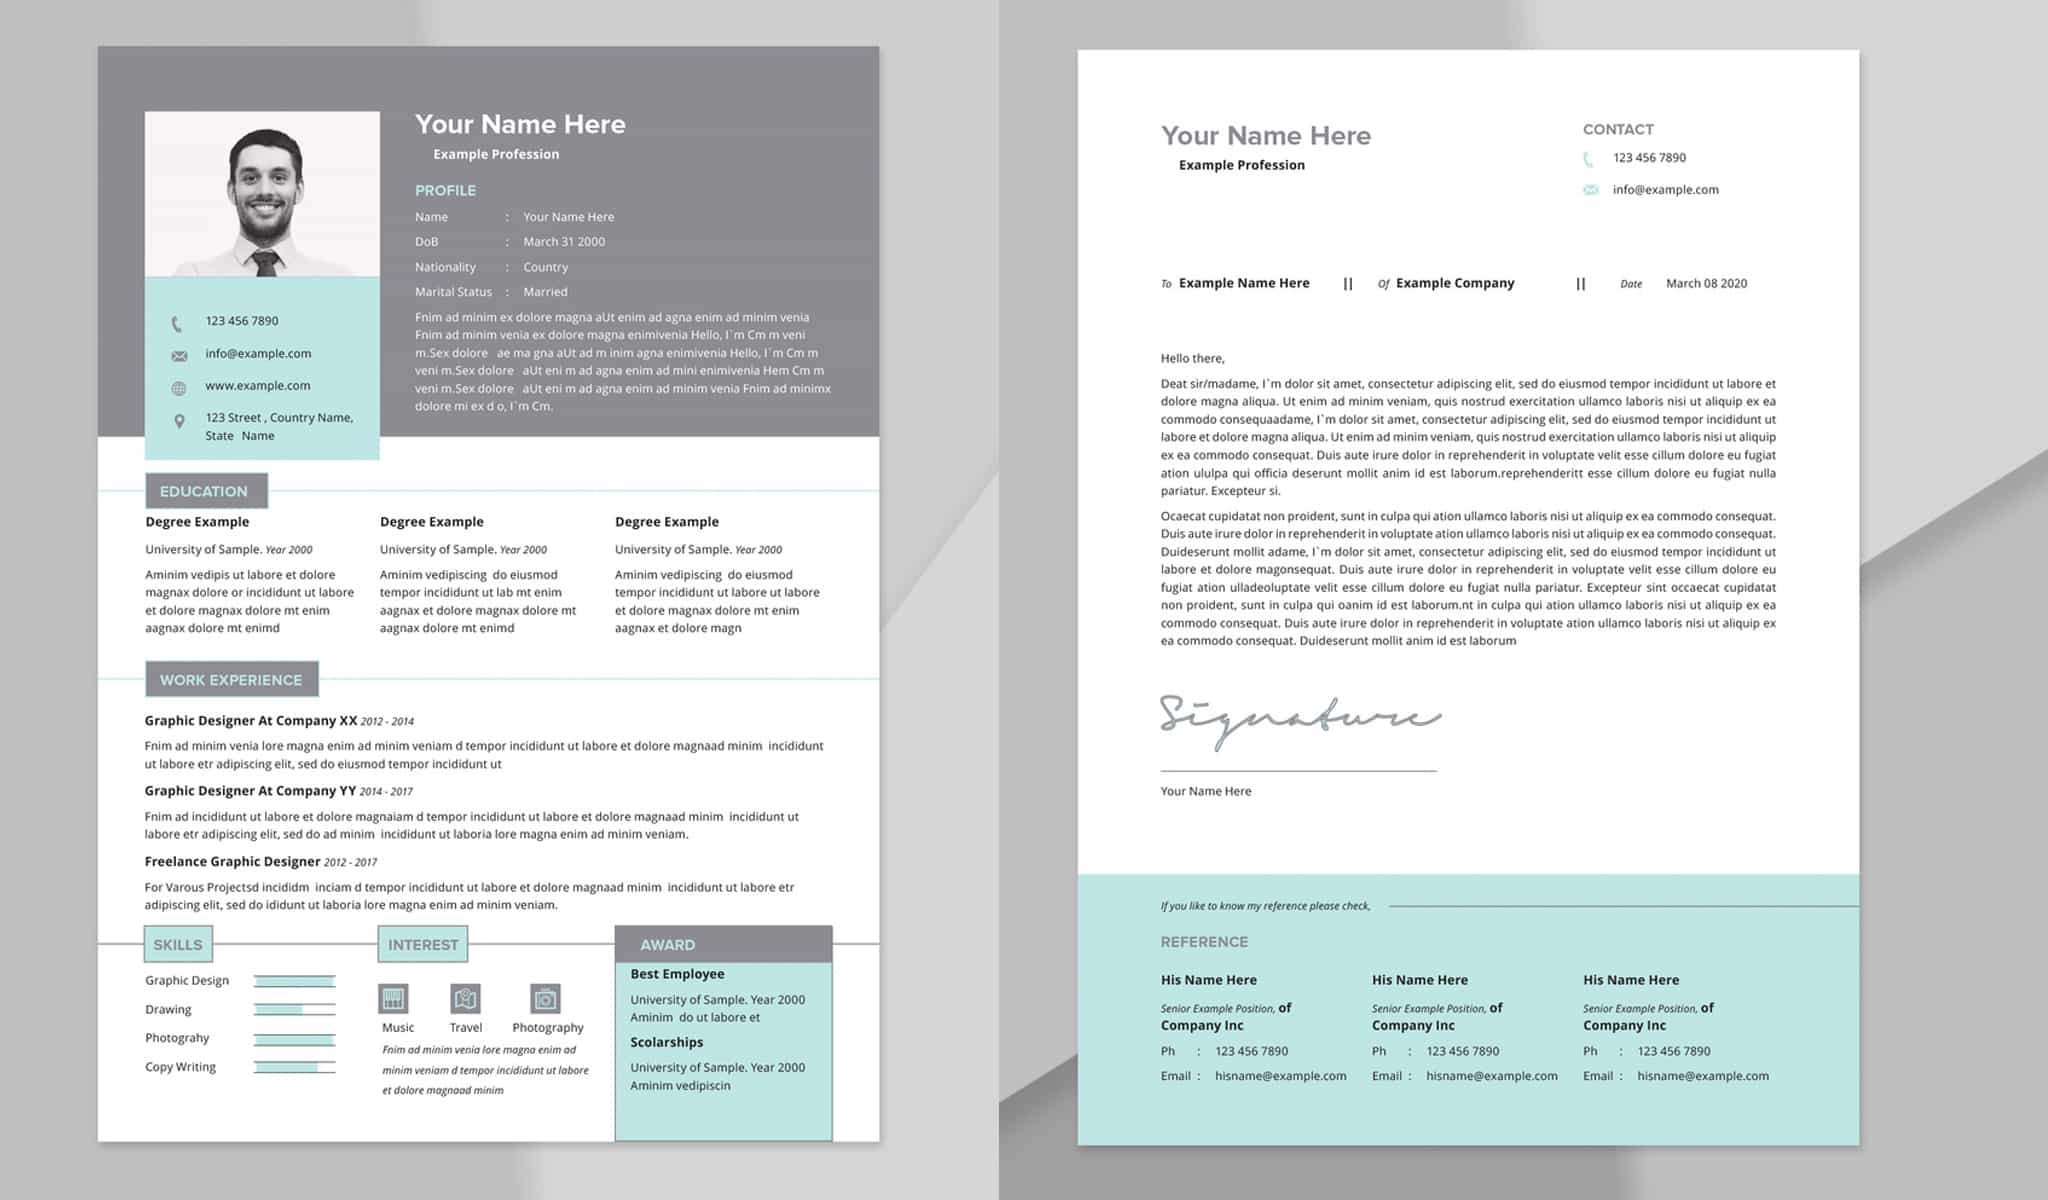 Resume Layout with Light Blue and Grey Accents